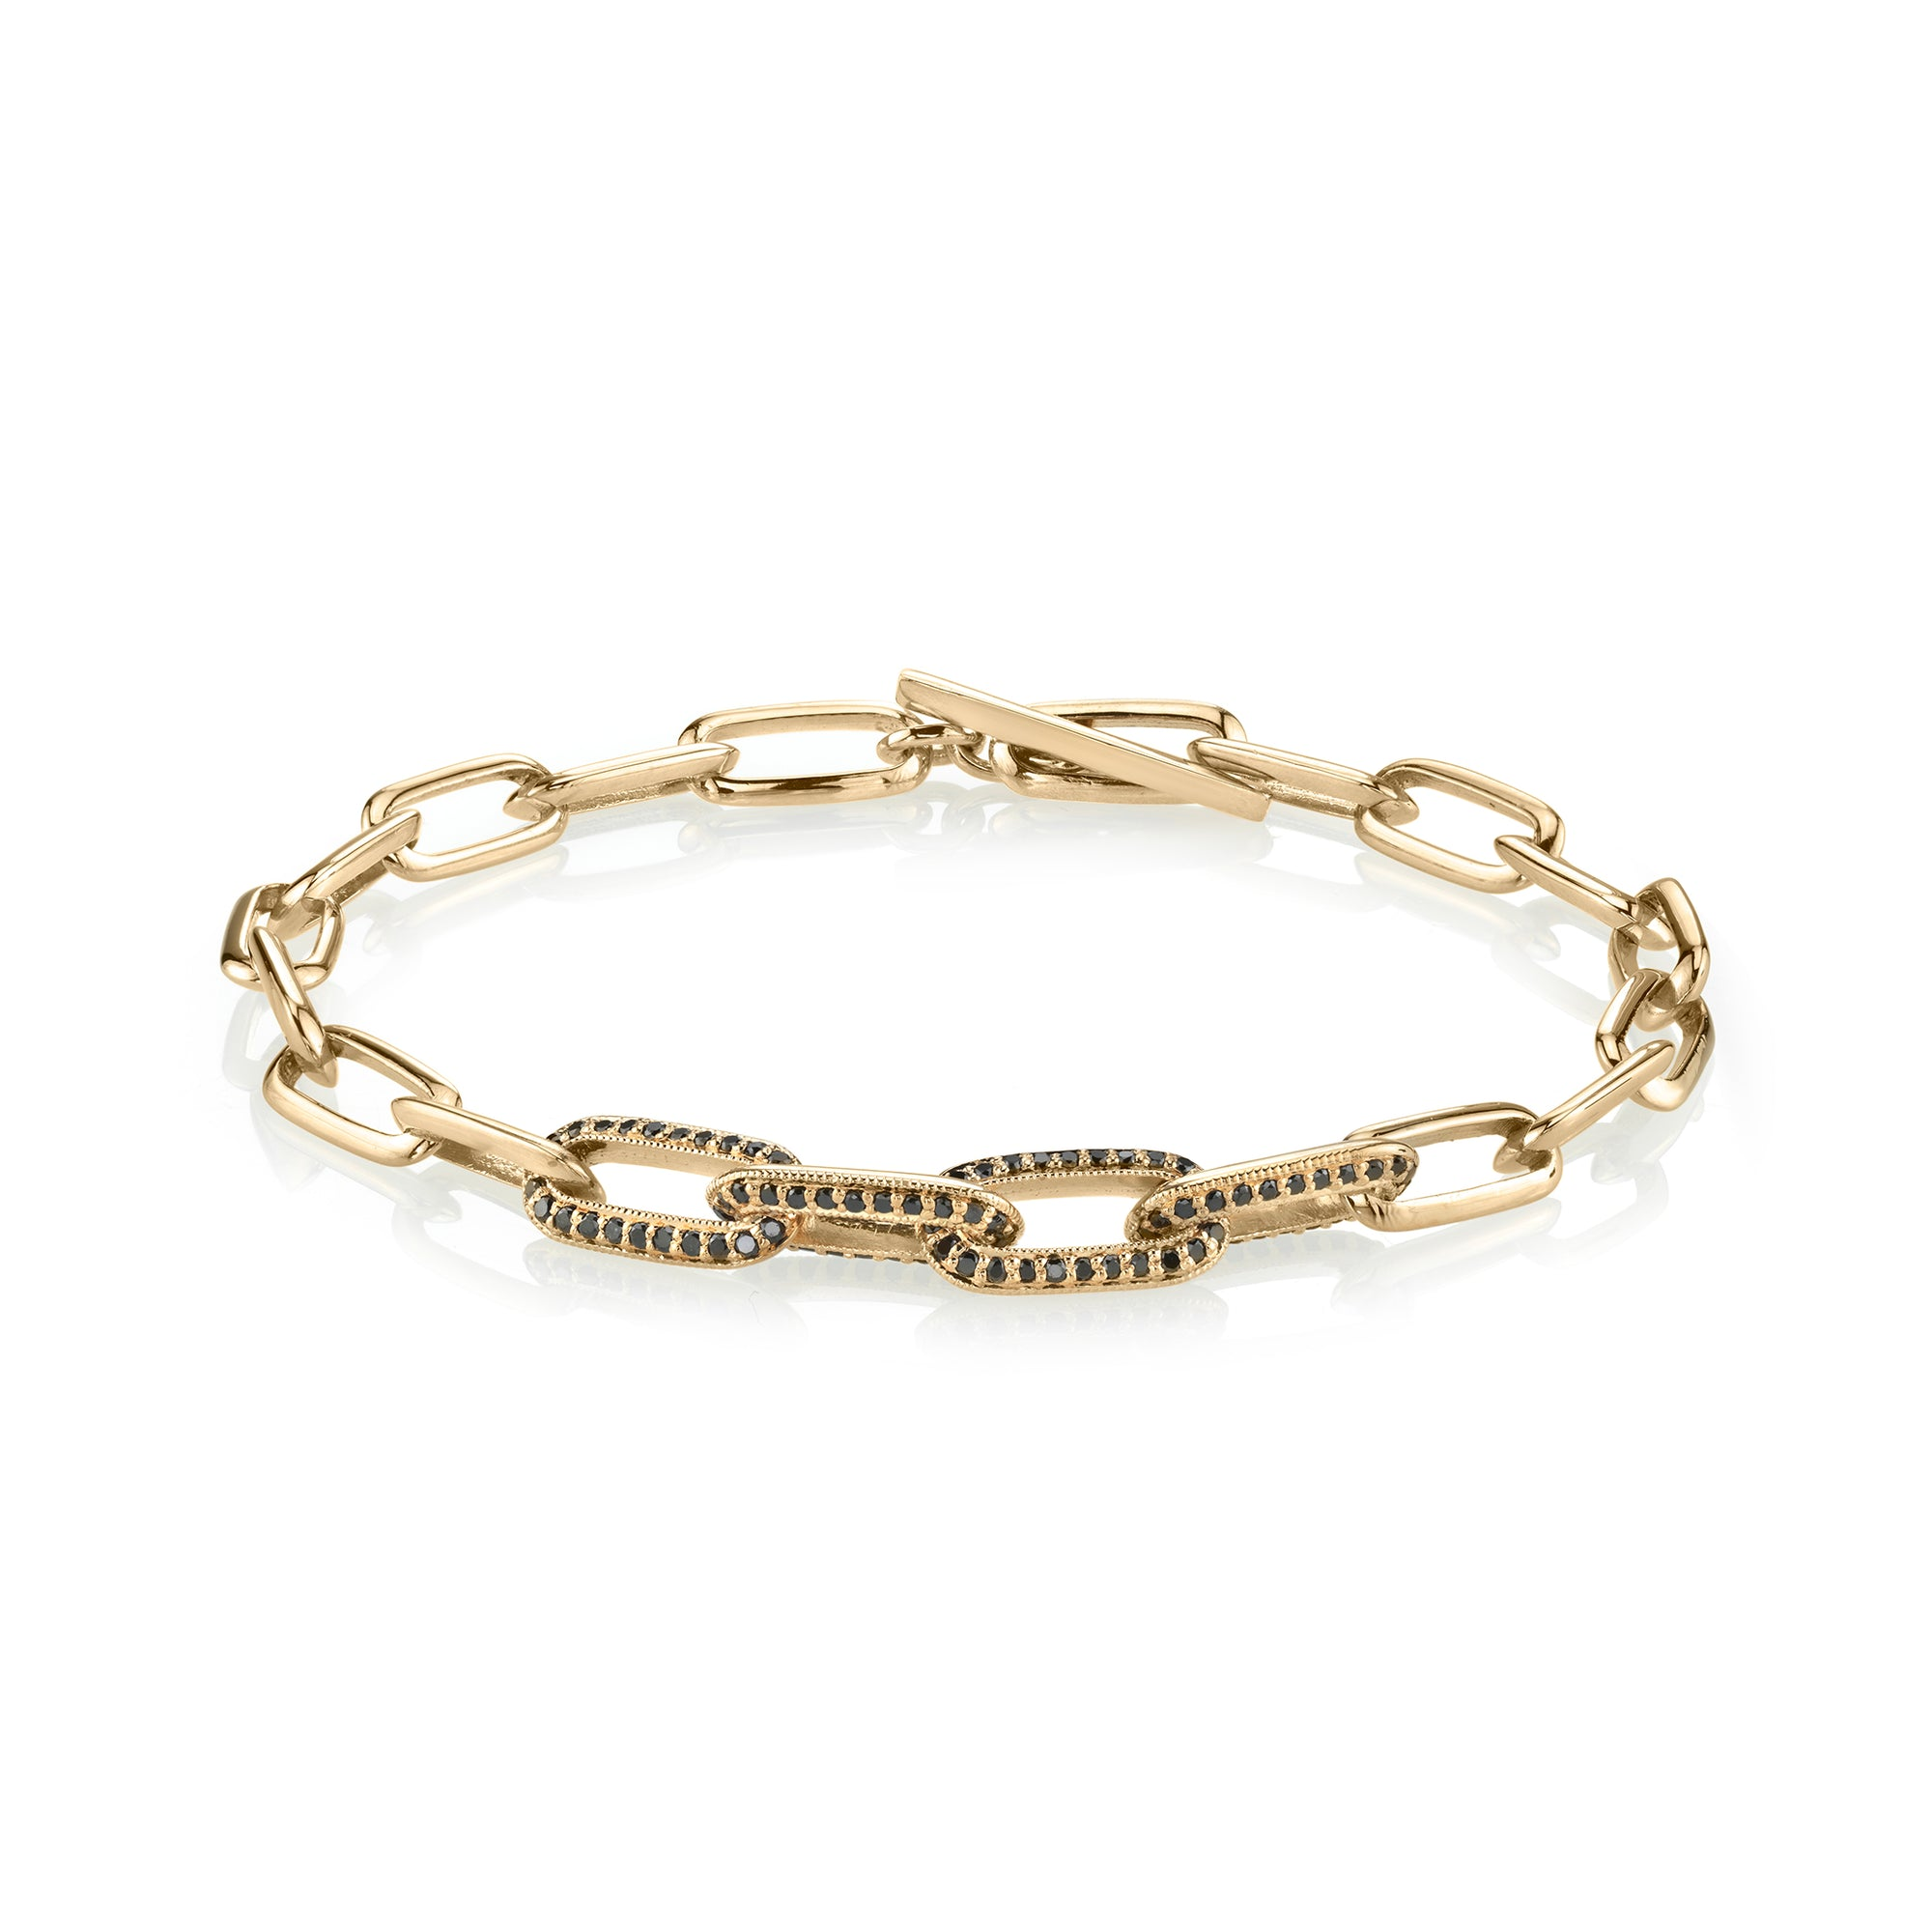 Knife Edge Oval Link Chain Bracelet with Four Pave Links